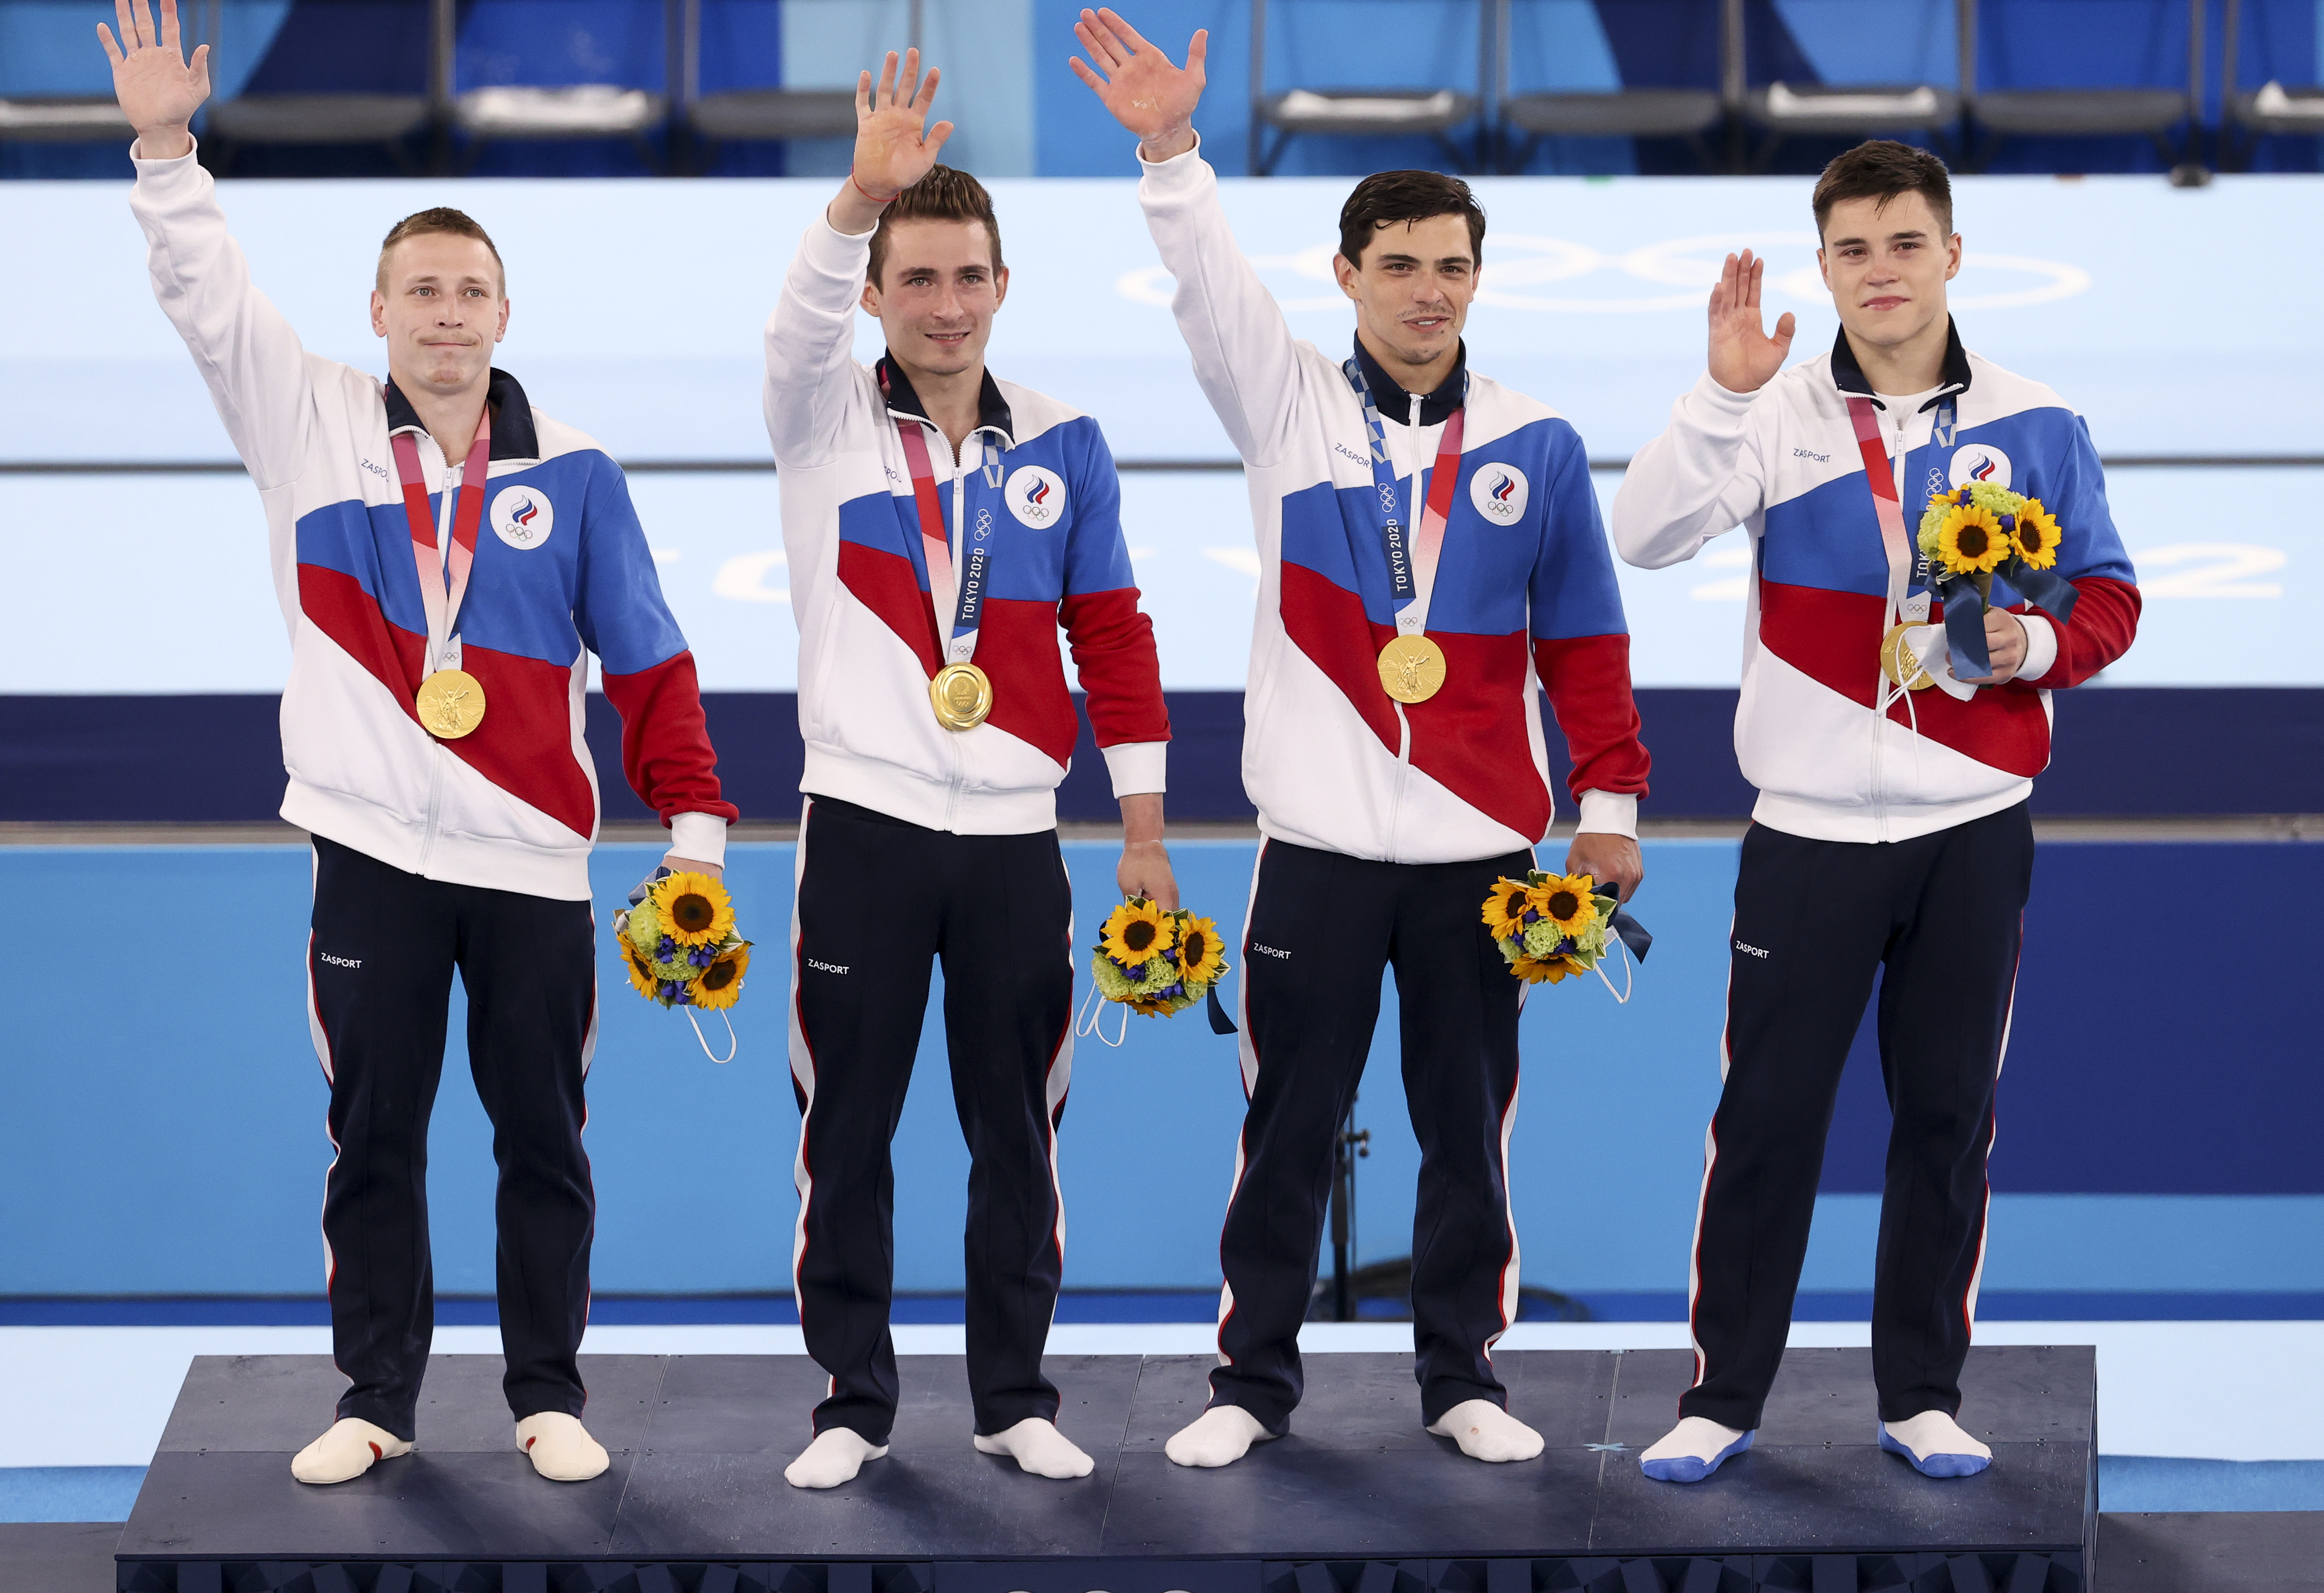 Gold medalists Denis Abliazin, David Belyavskiy, Artur Dalaloyan and Nikita Nagornyy of Team Russia react on the podium during the medal ceremony in the gymnastics artistic Men's Team Final on day three of the Tokyo 2020 Olympic Games at Ariake Gymnastics Centre on July 26, 2021 in Tokyo, Japan.